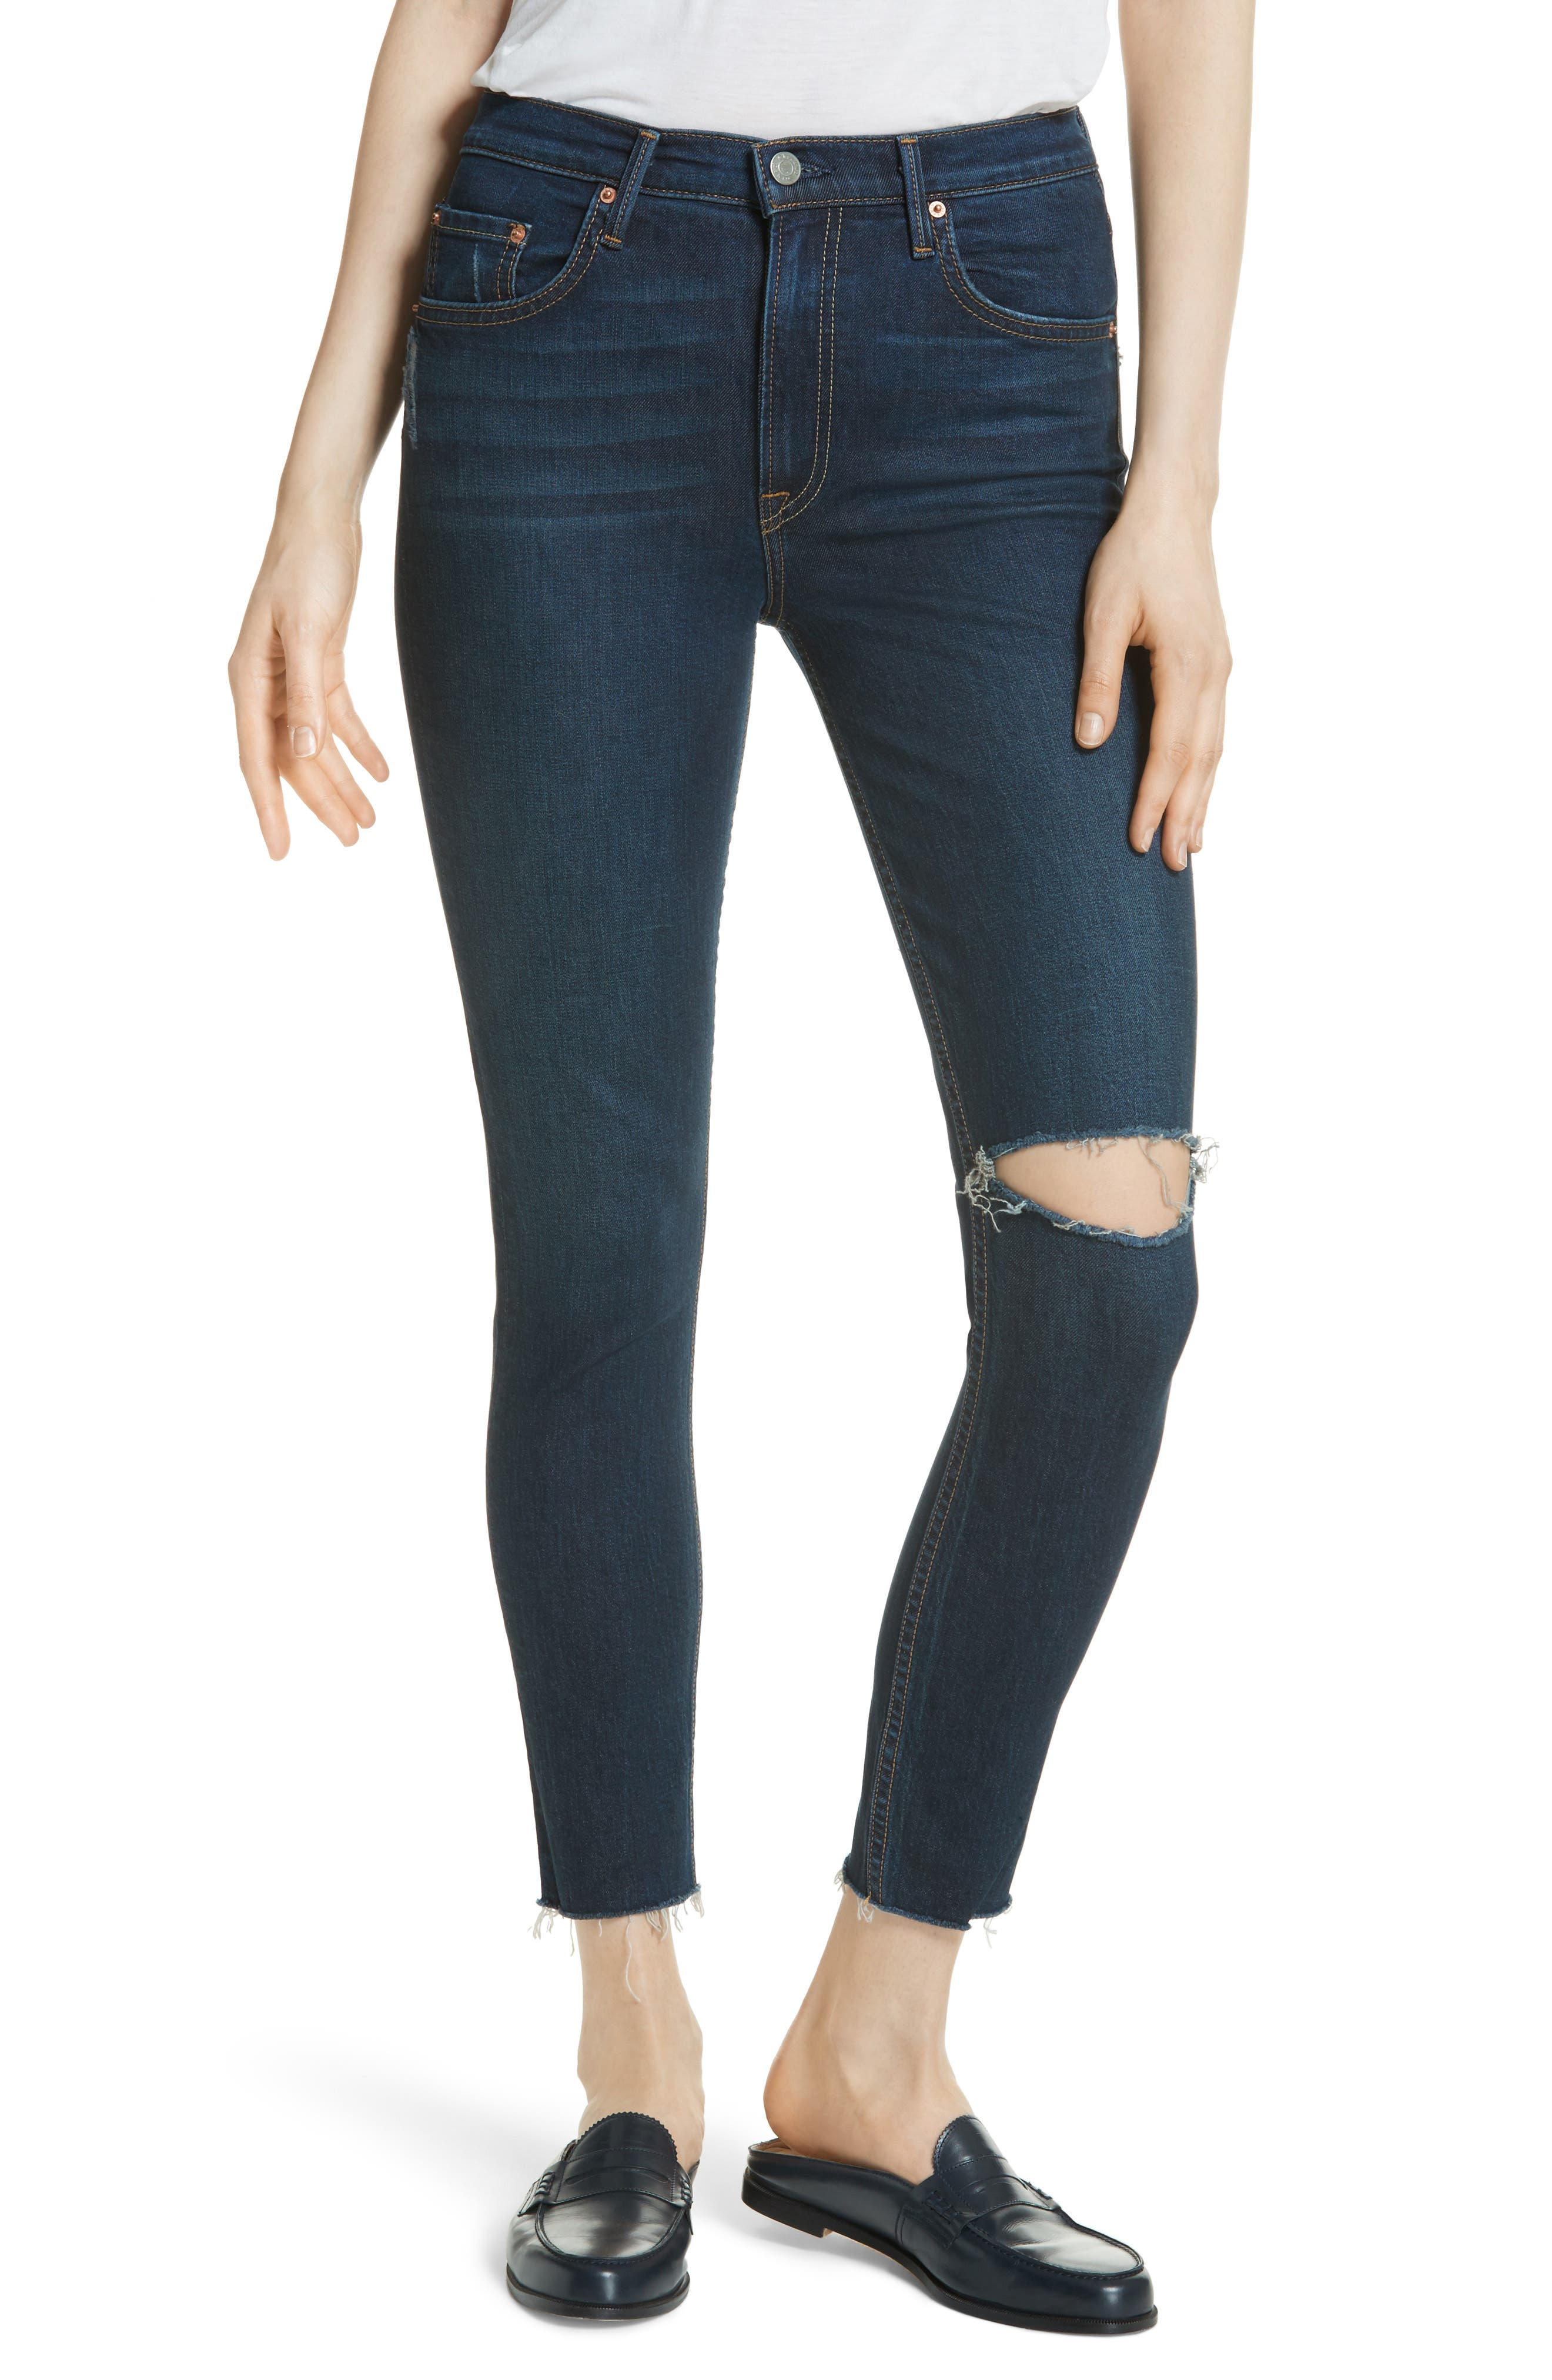 Kendall Super Stretch High Waist Skinny Jeans,                             Main thumbnail 1, color,                             478